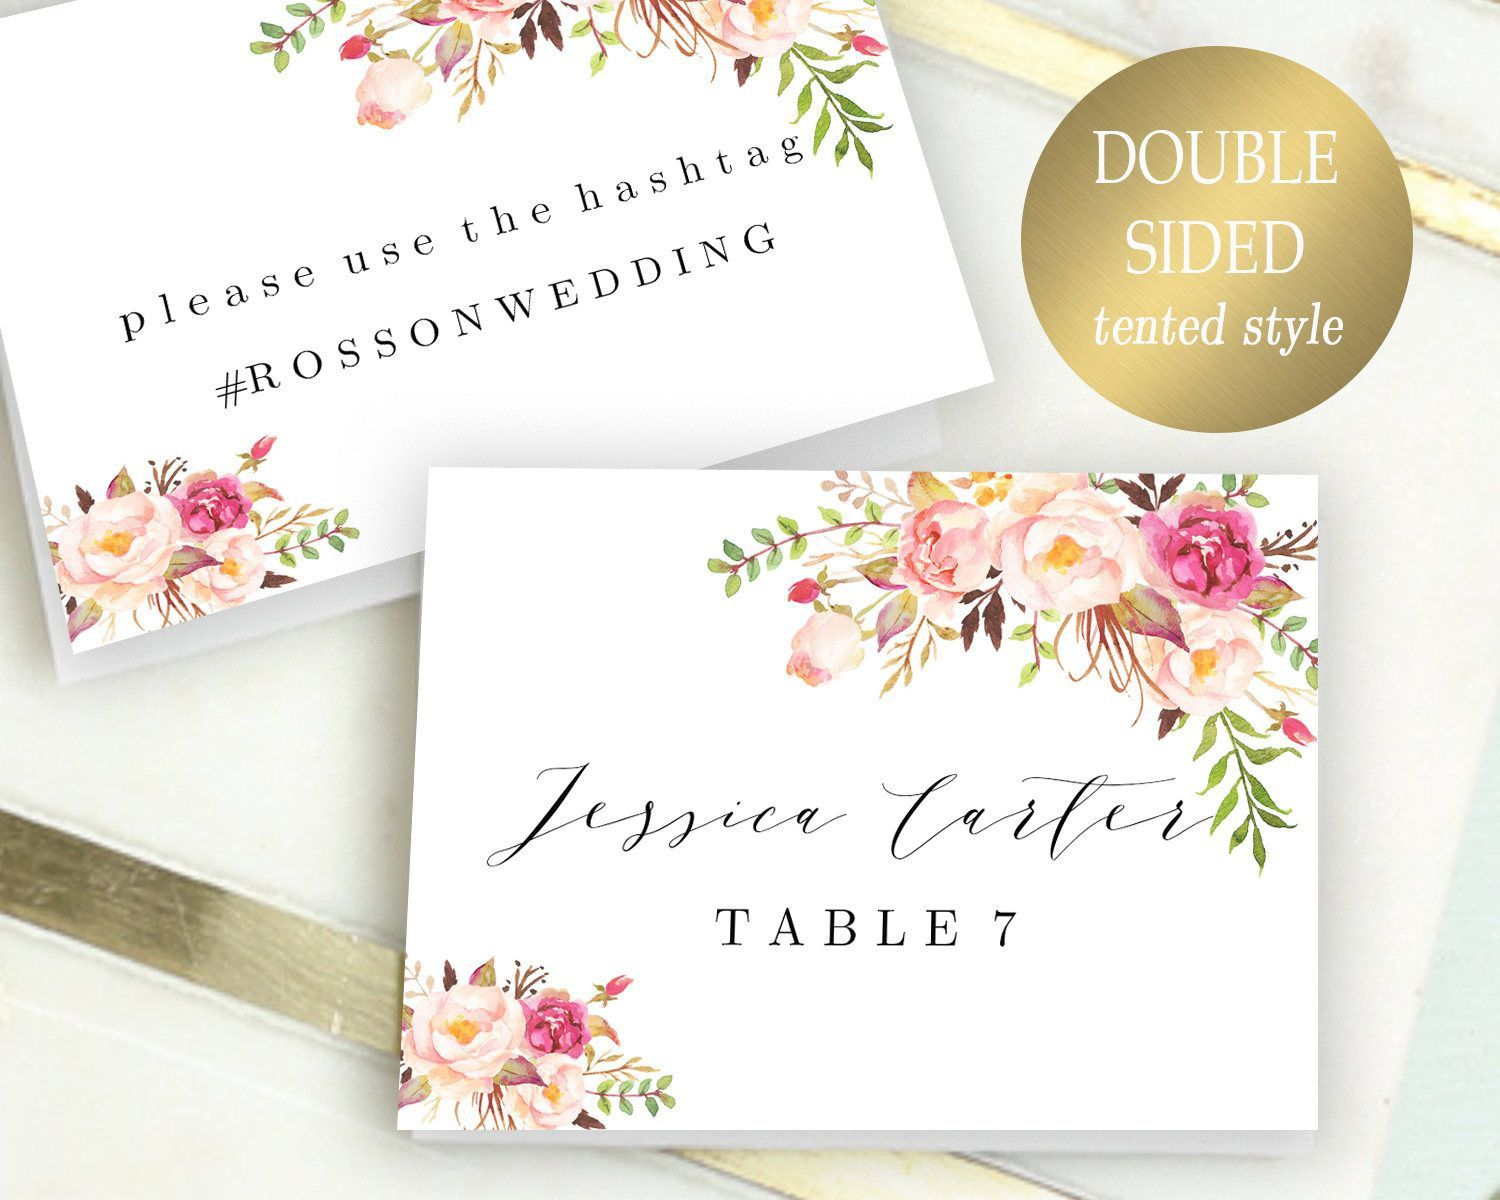 003 Exceptional Name Place Card Template For Wedding High Resolution  Free WordFull